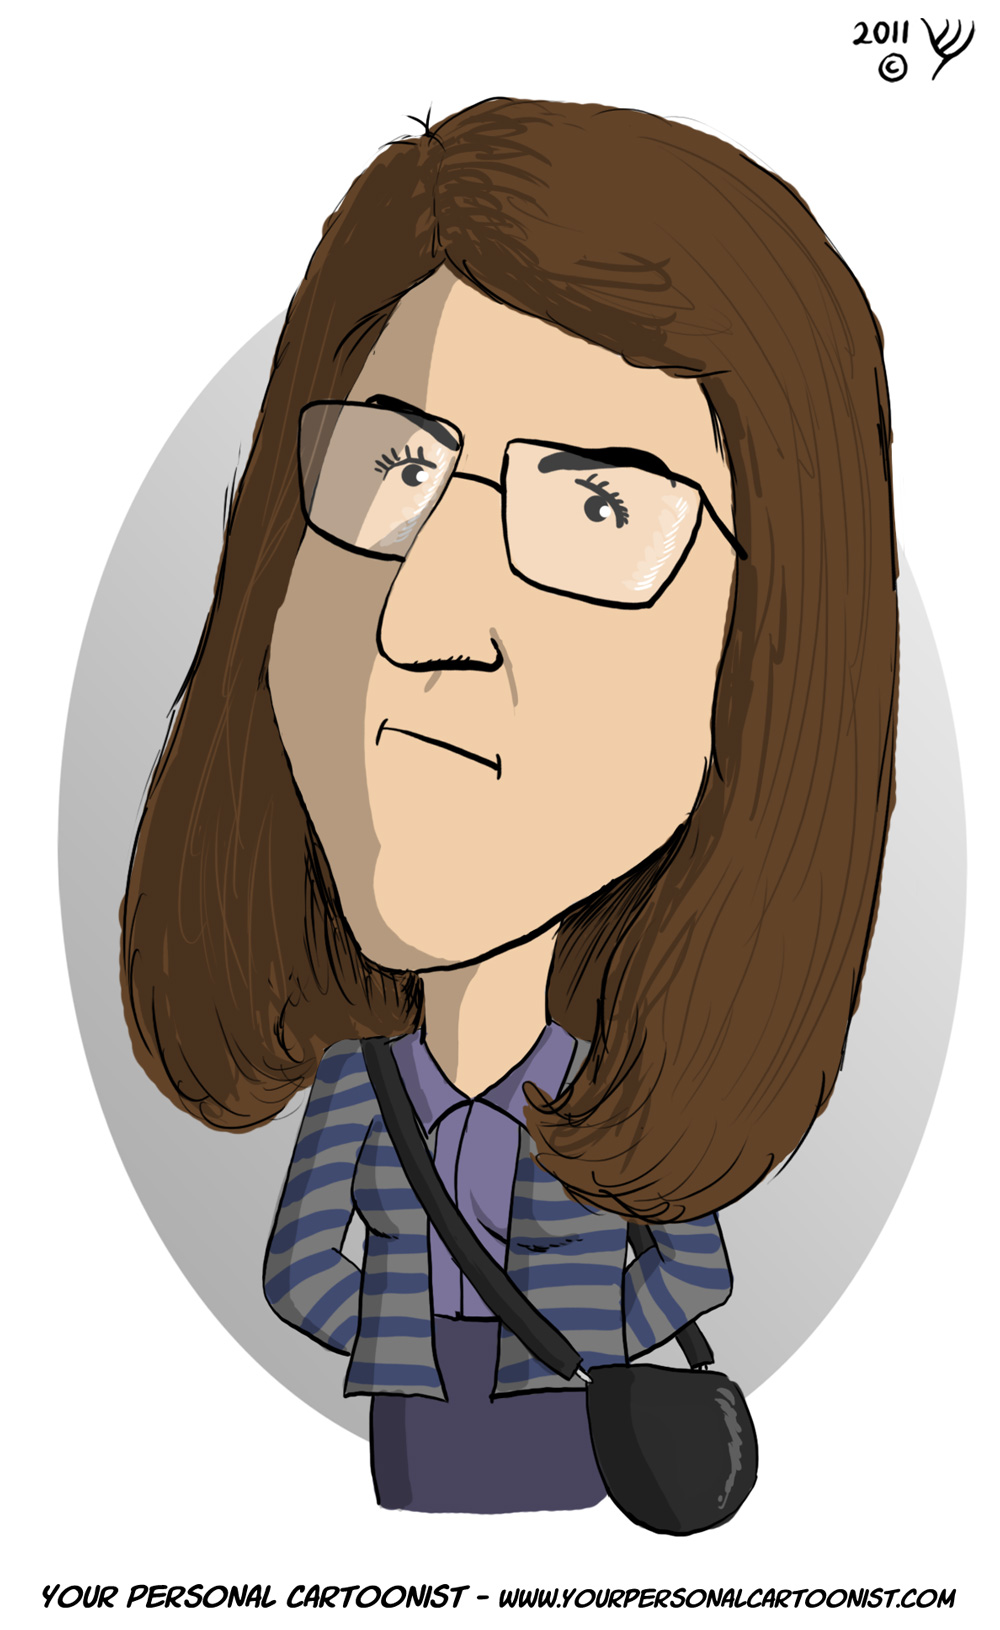 Big Bang Theory - Amy Farrah Fowler - Caricature